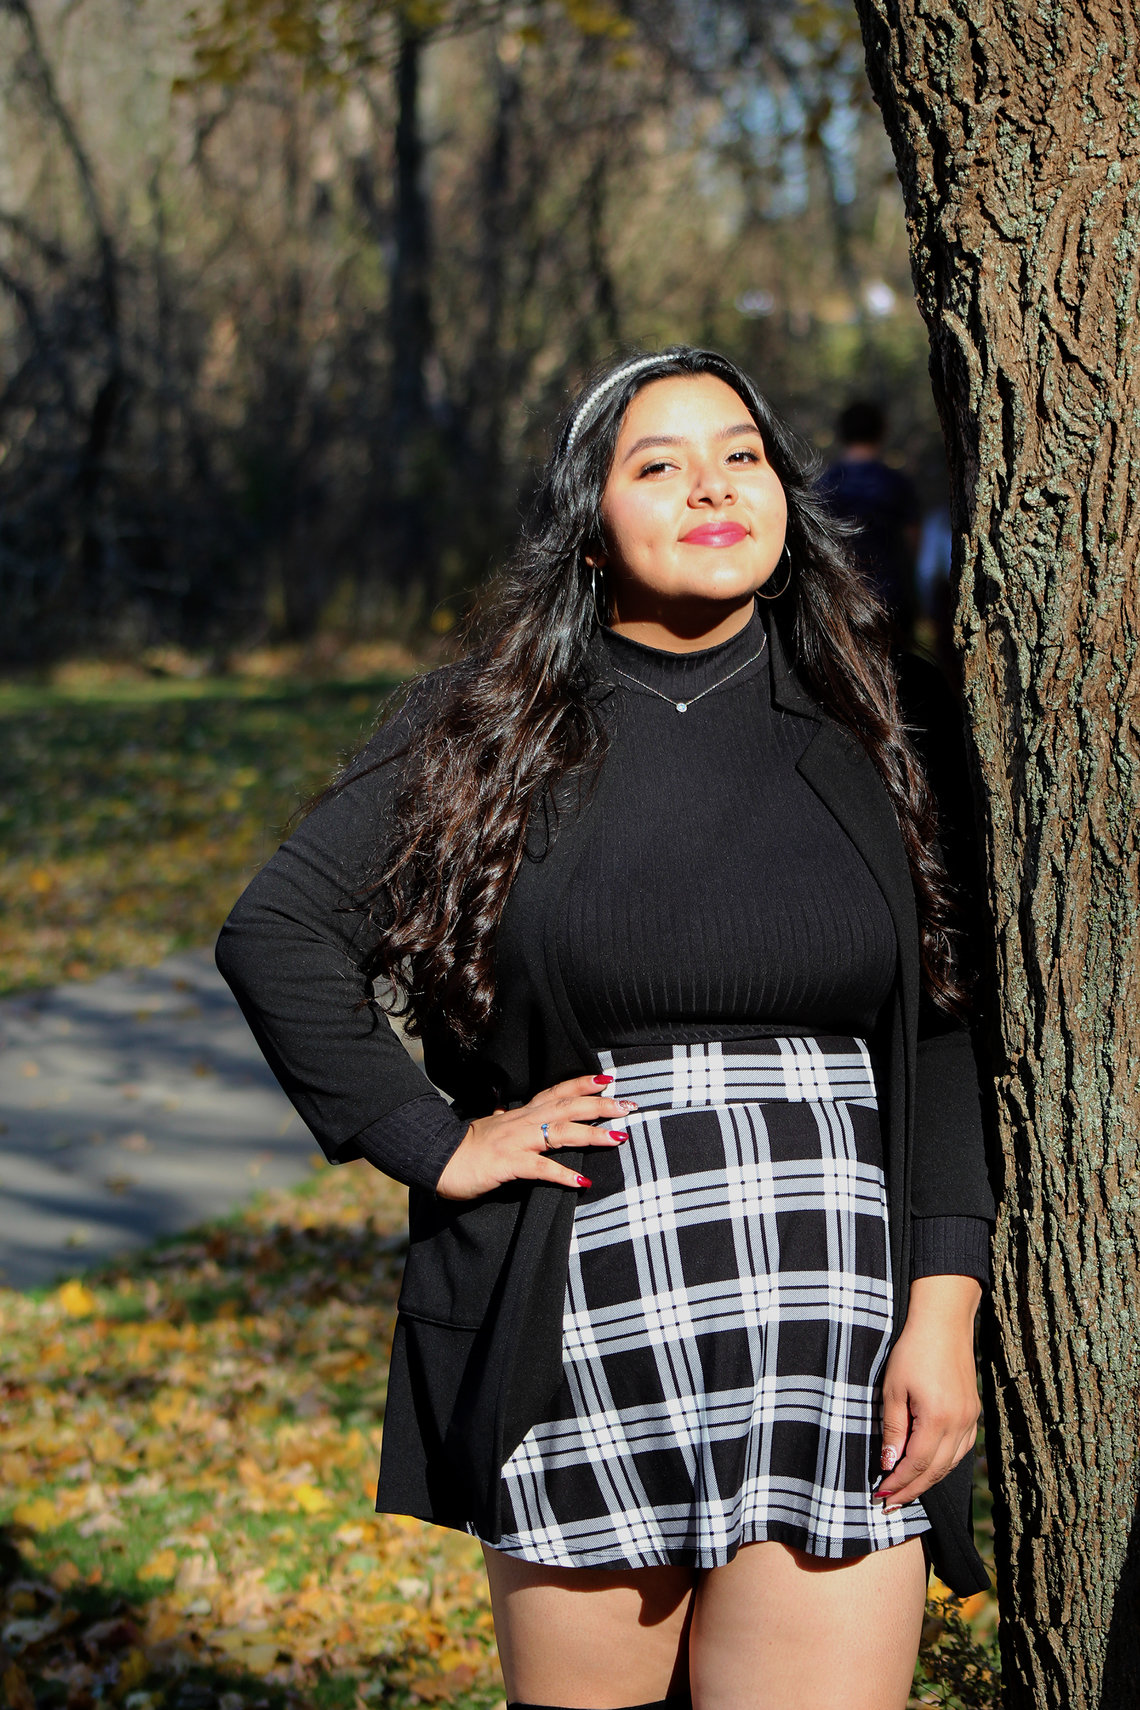 Cassandra Casas, a U.S. citizen, is a high school senior in Wisconsin. Her family was excluded from COVID-19 relief payments because her father, an undocumented immigrant, paid his taxes using a taxpayer identification number.